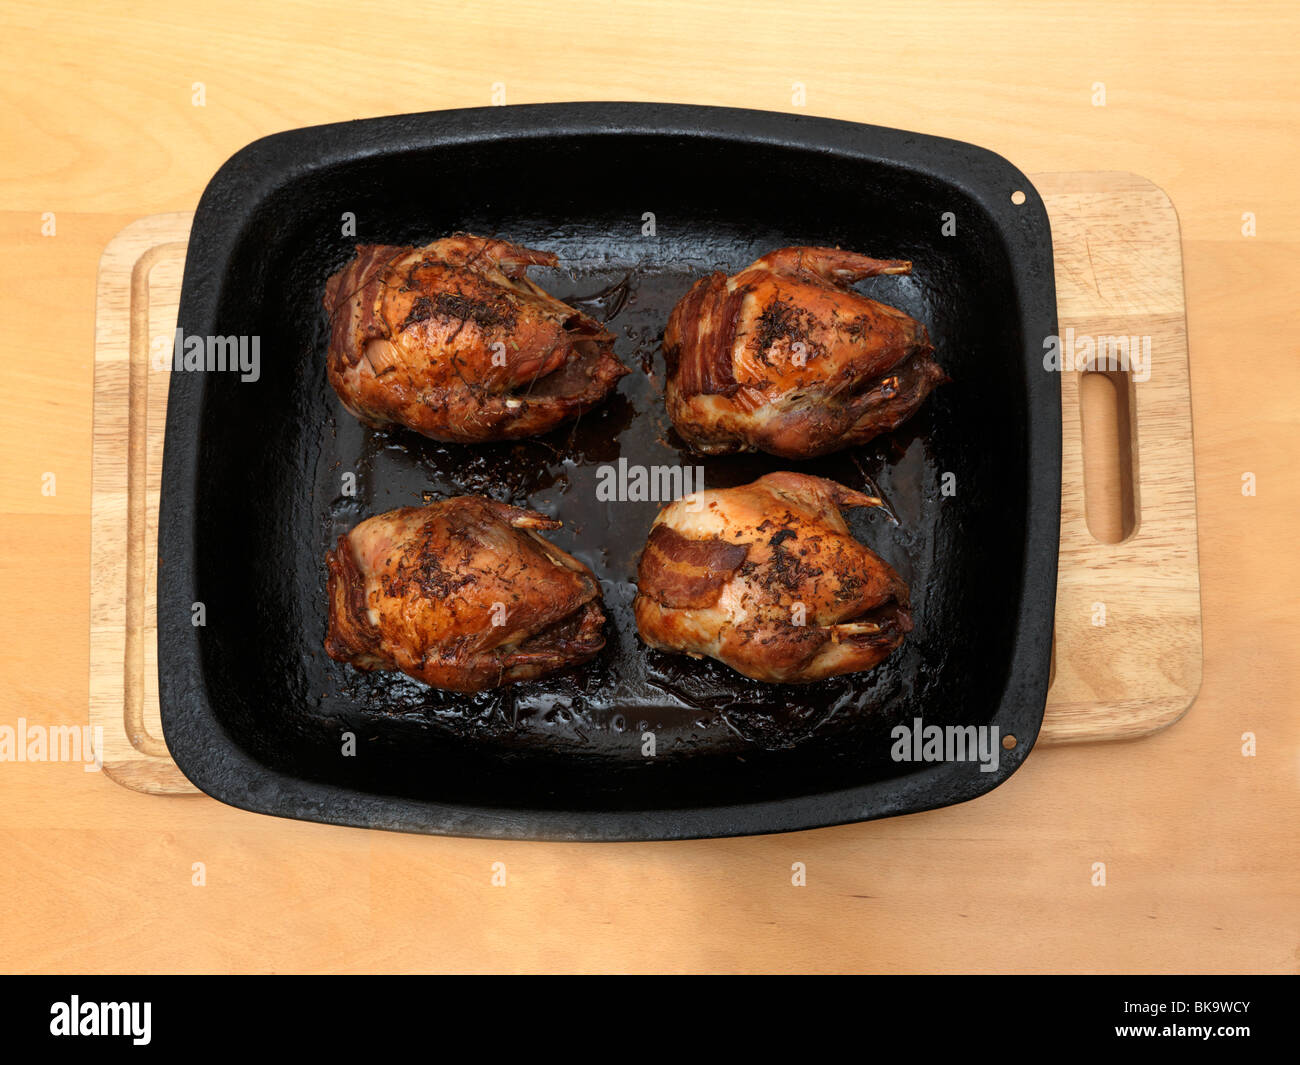 Four Cooked Partridges on a Baking Dish England - Stock Image